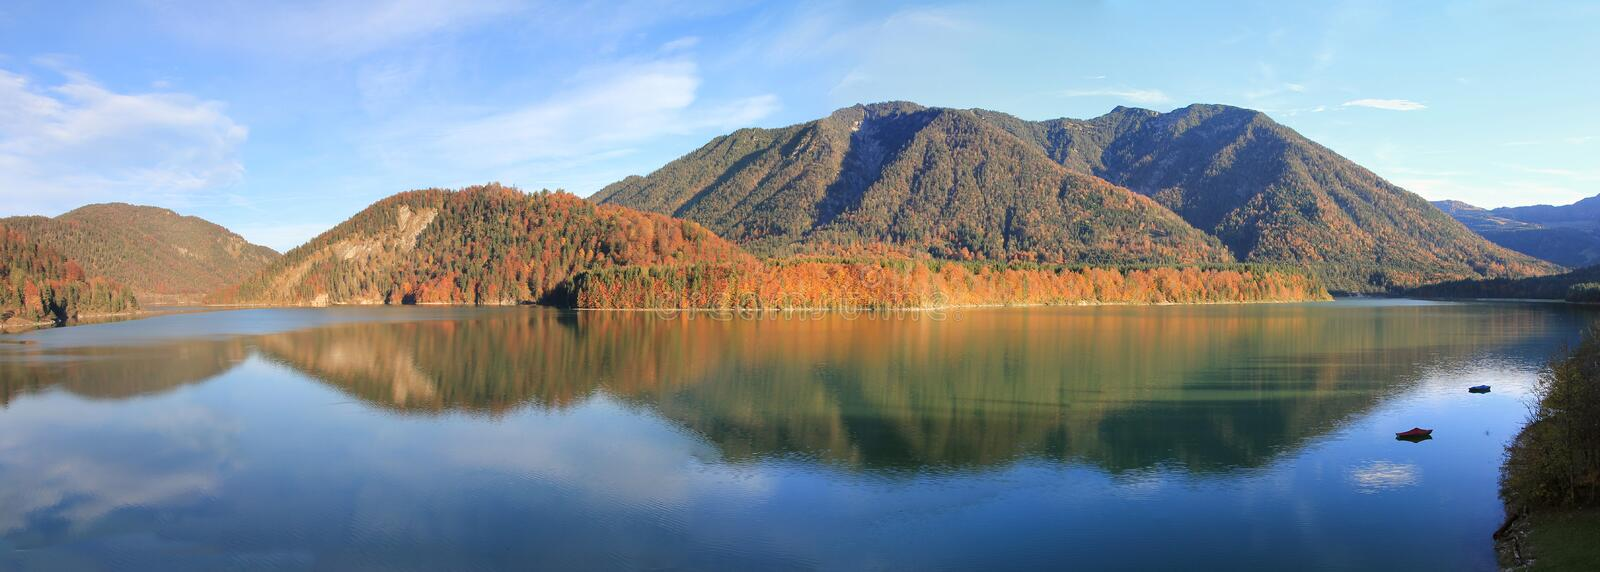 Download Artificial Lake Sylvenstein In Autumn Stock Image - Image: 40035869